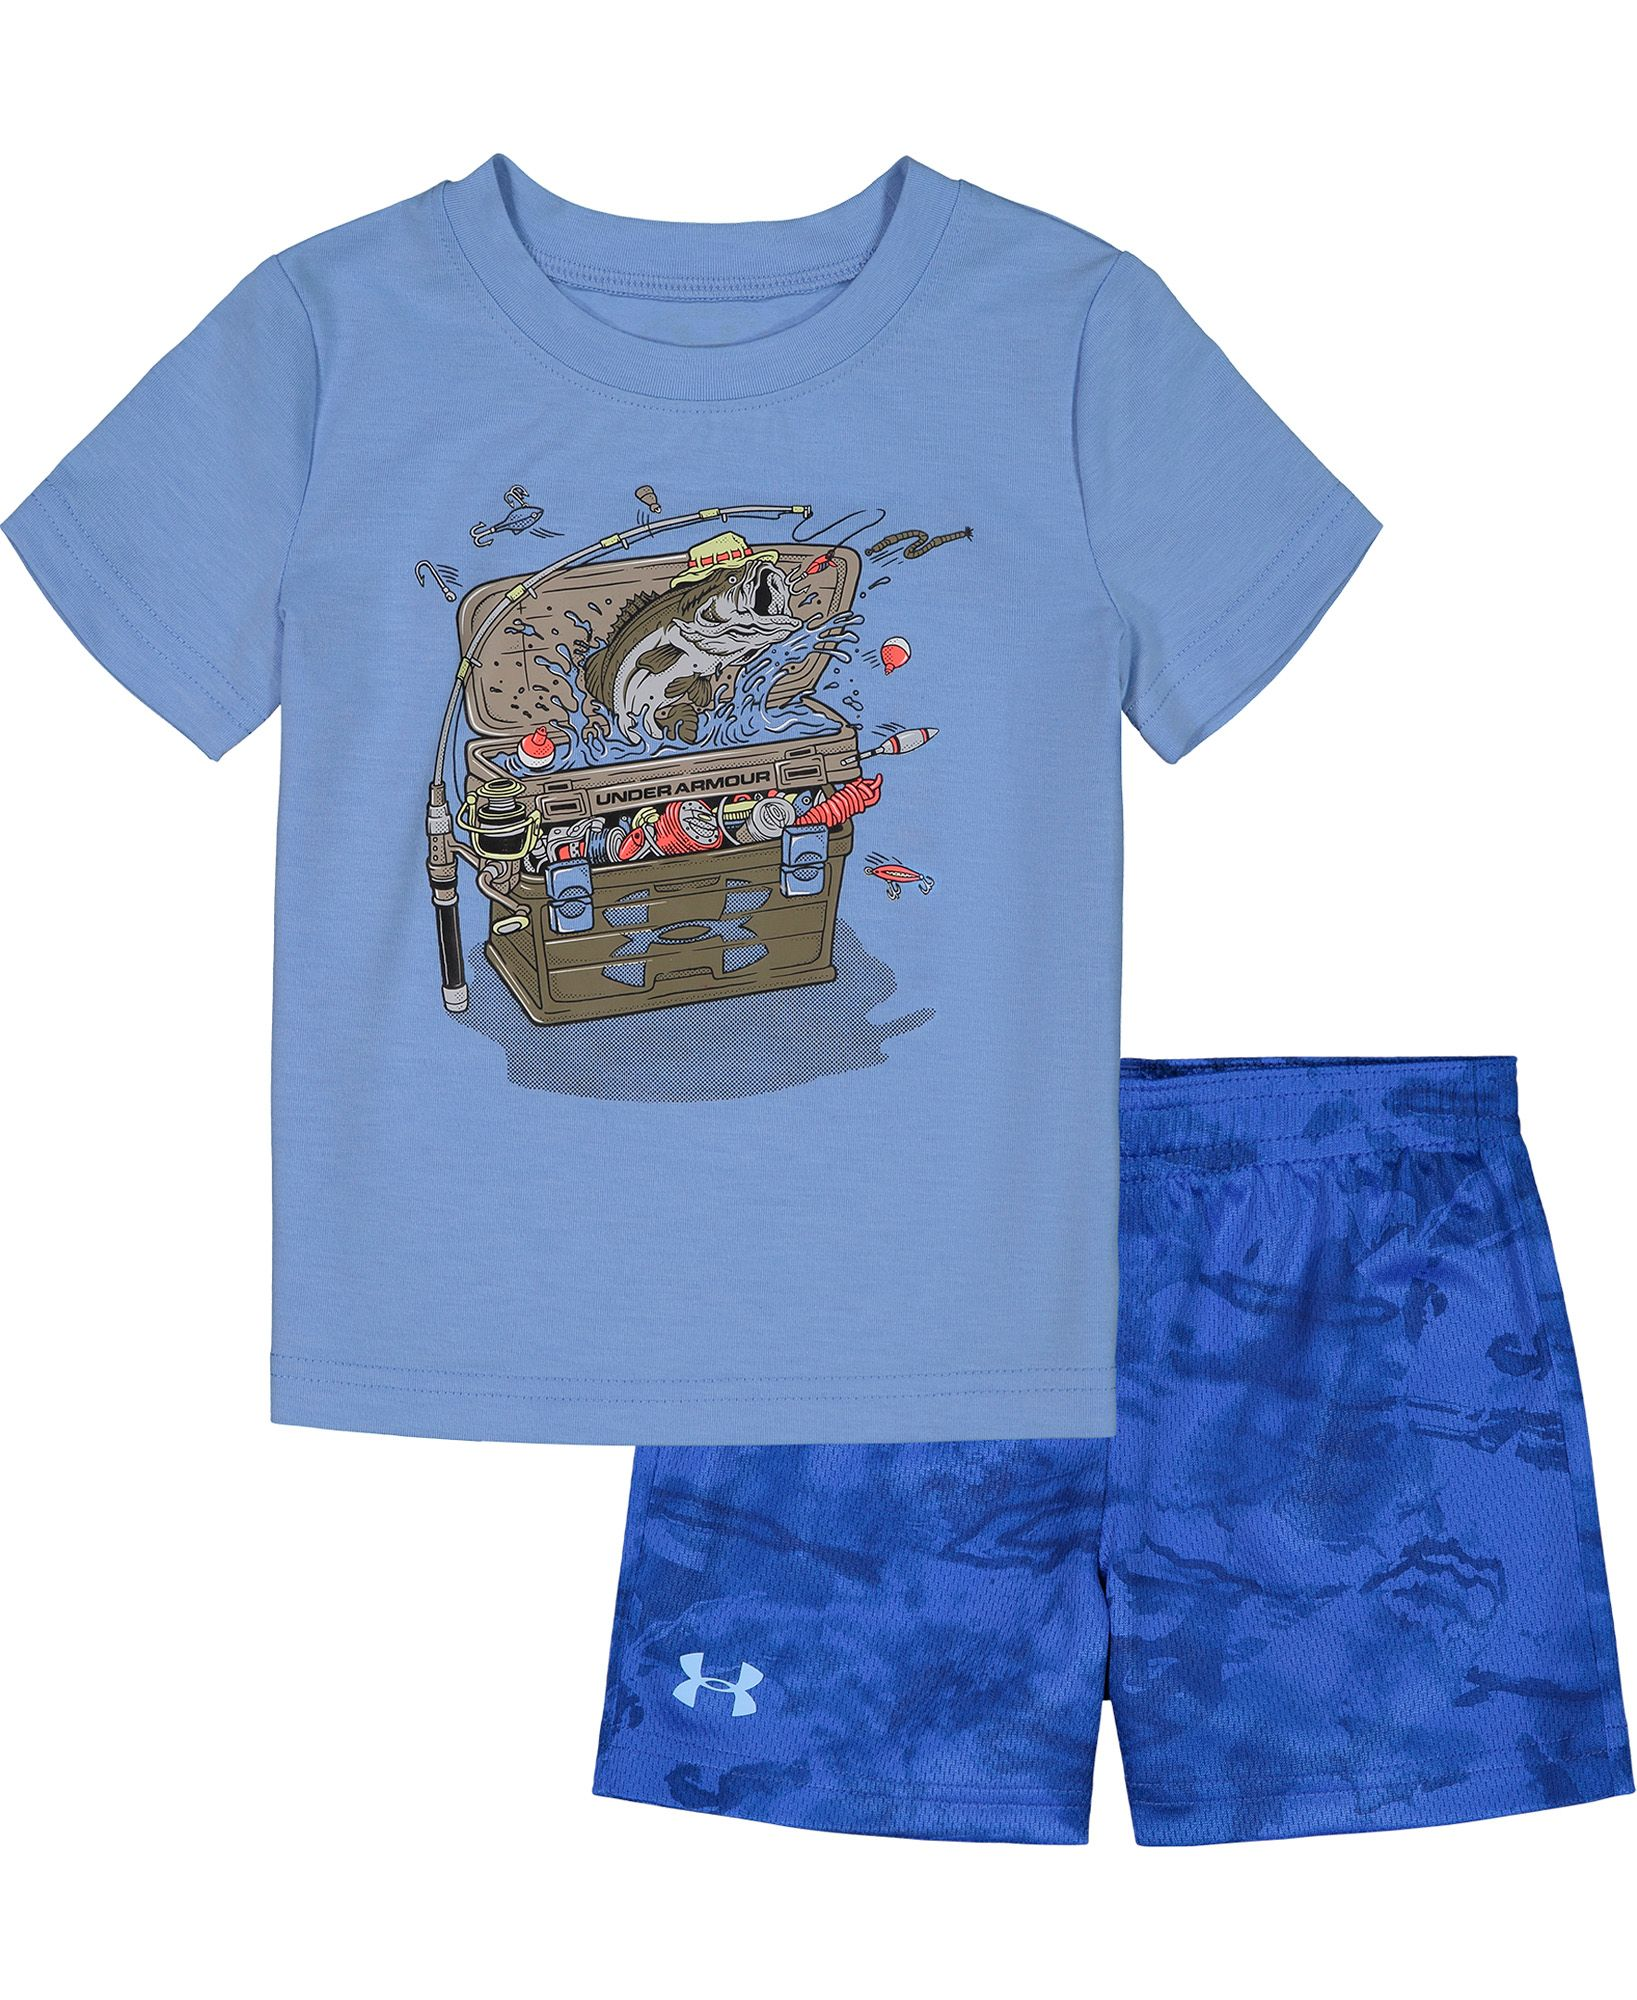 Under Armour Infant Boys' Tackle Box T-Shirt and Shorts 2-Piece Set, Boy's, Size: 12M, Blue